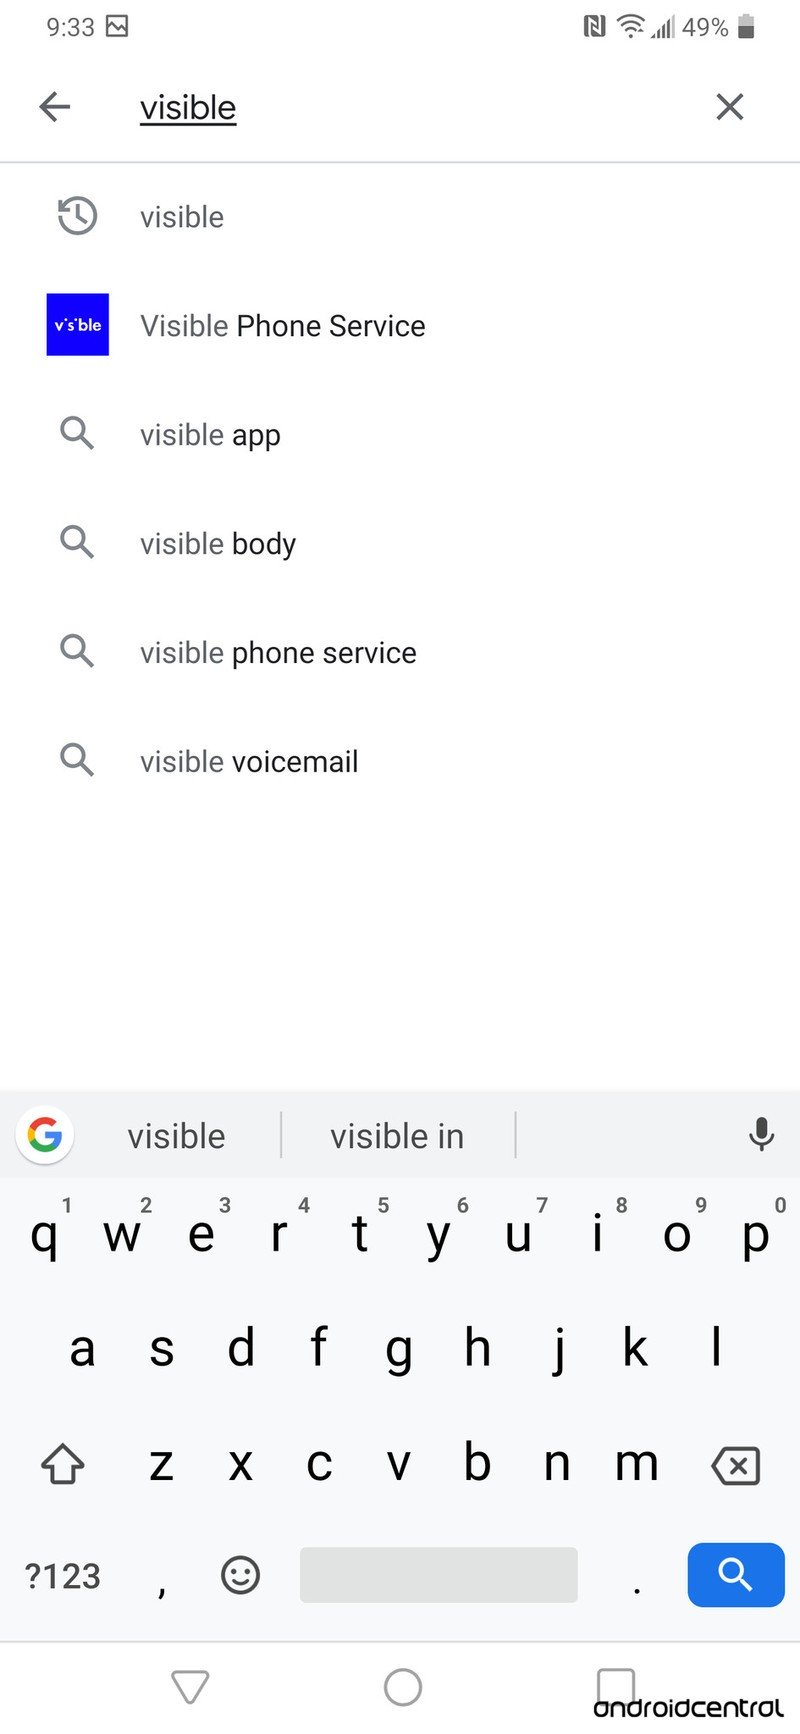 visible-how-to-sign-up-2-oct2019.jpg?ito